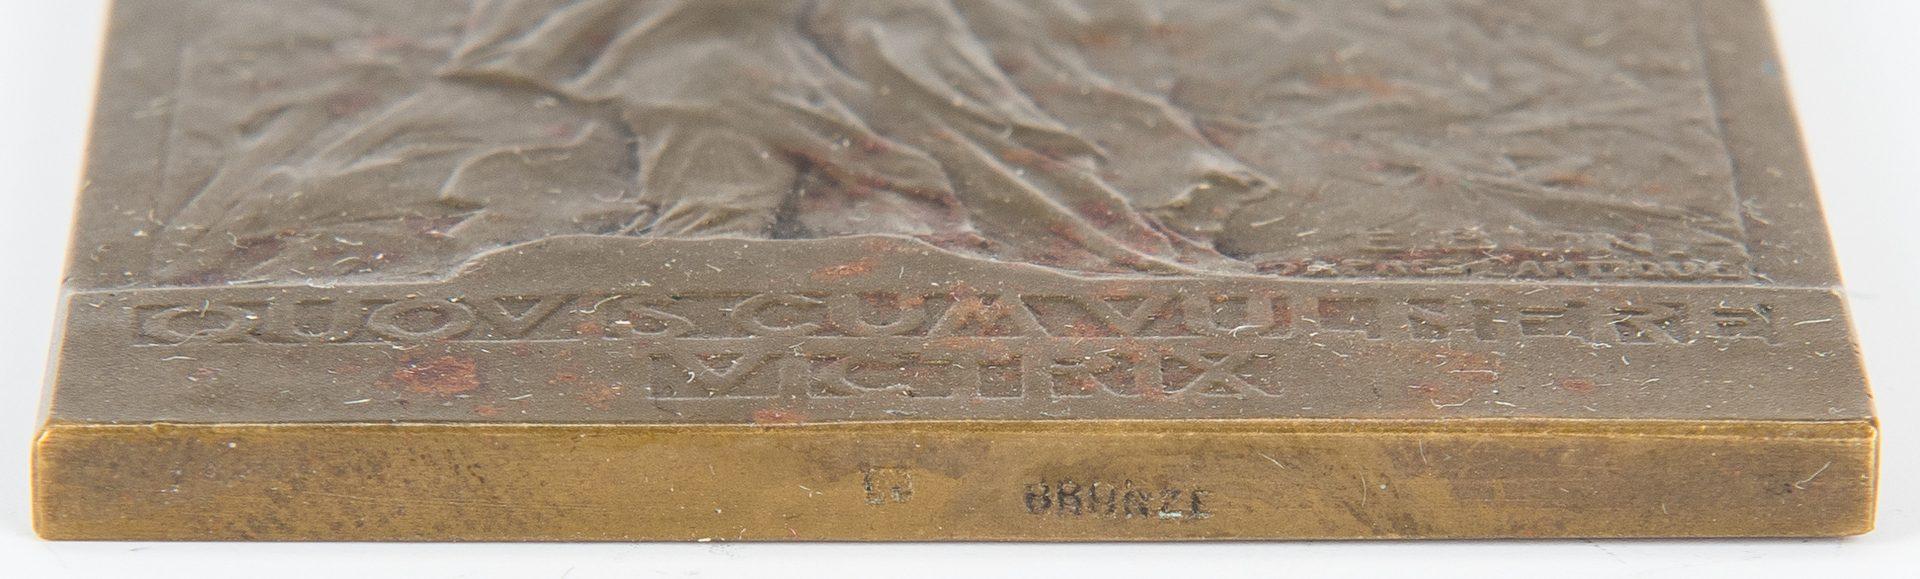 Lot 402: 4 Medals w/ Storage Box